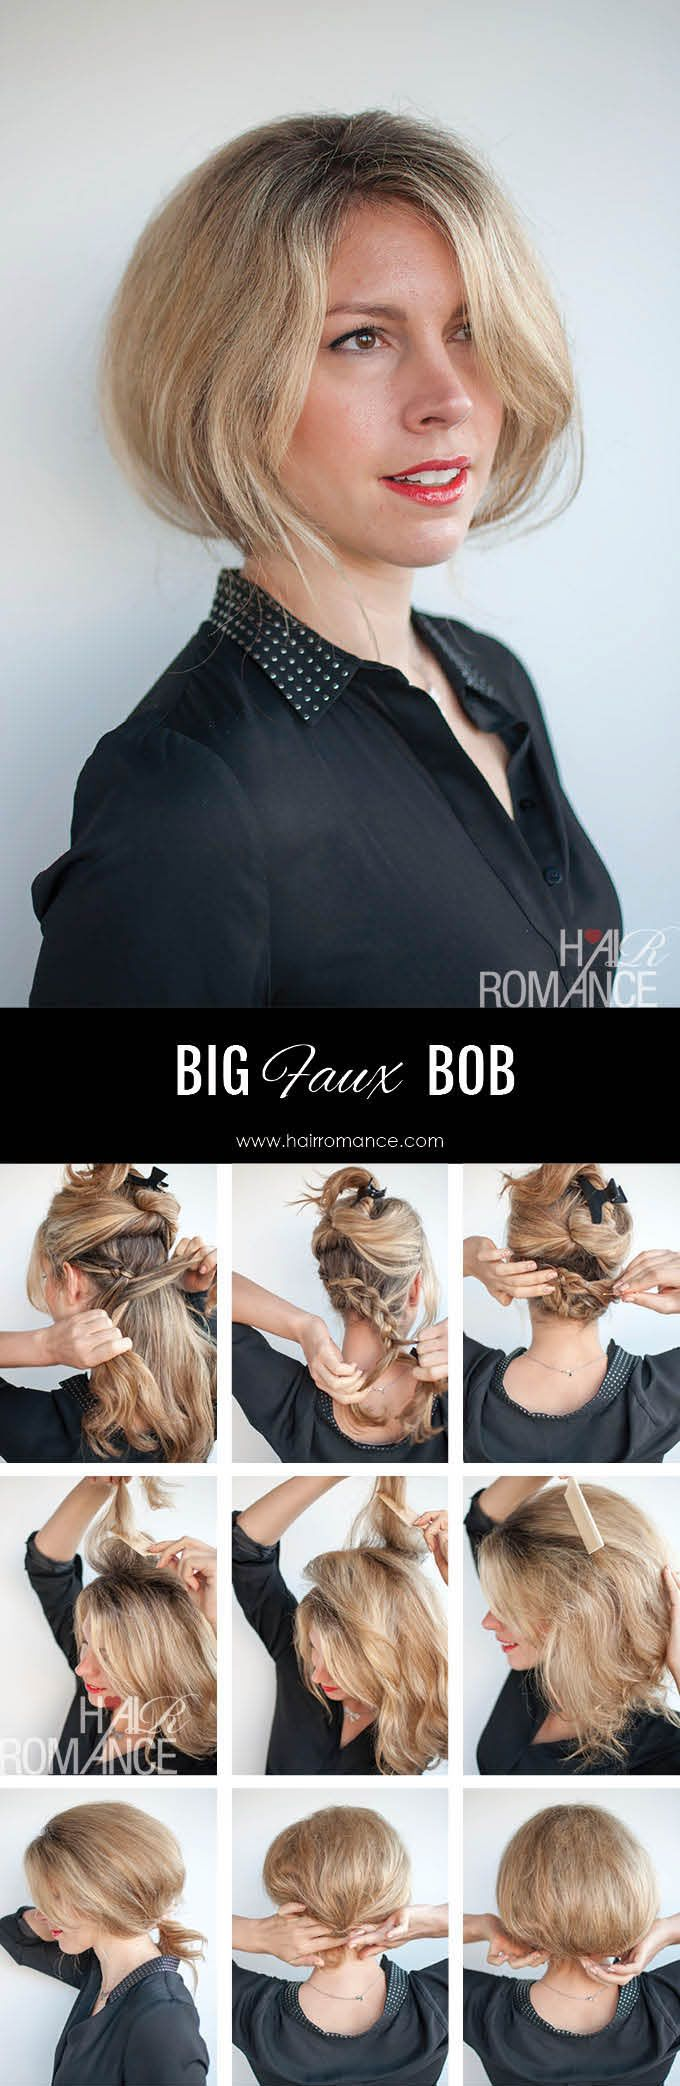 Faux bob hairstyle tutorial – try out short hair before the big chop